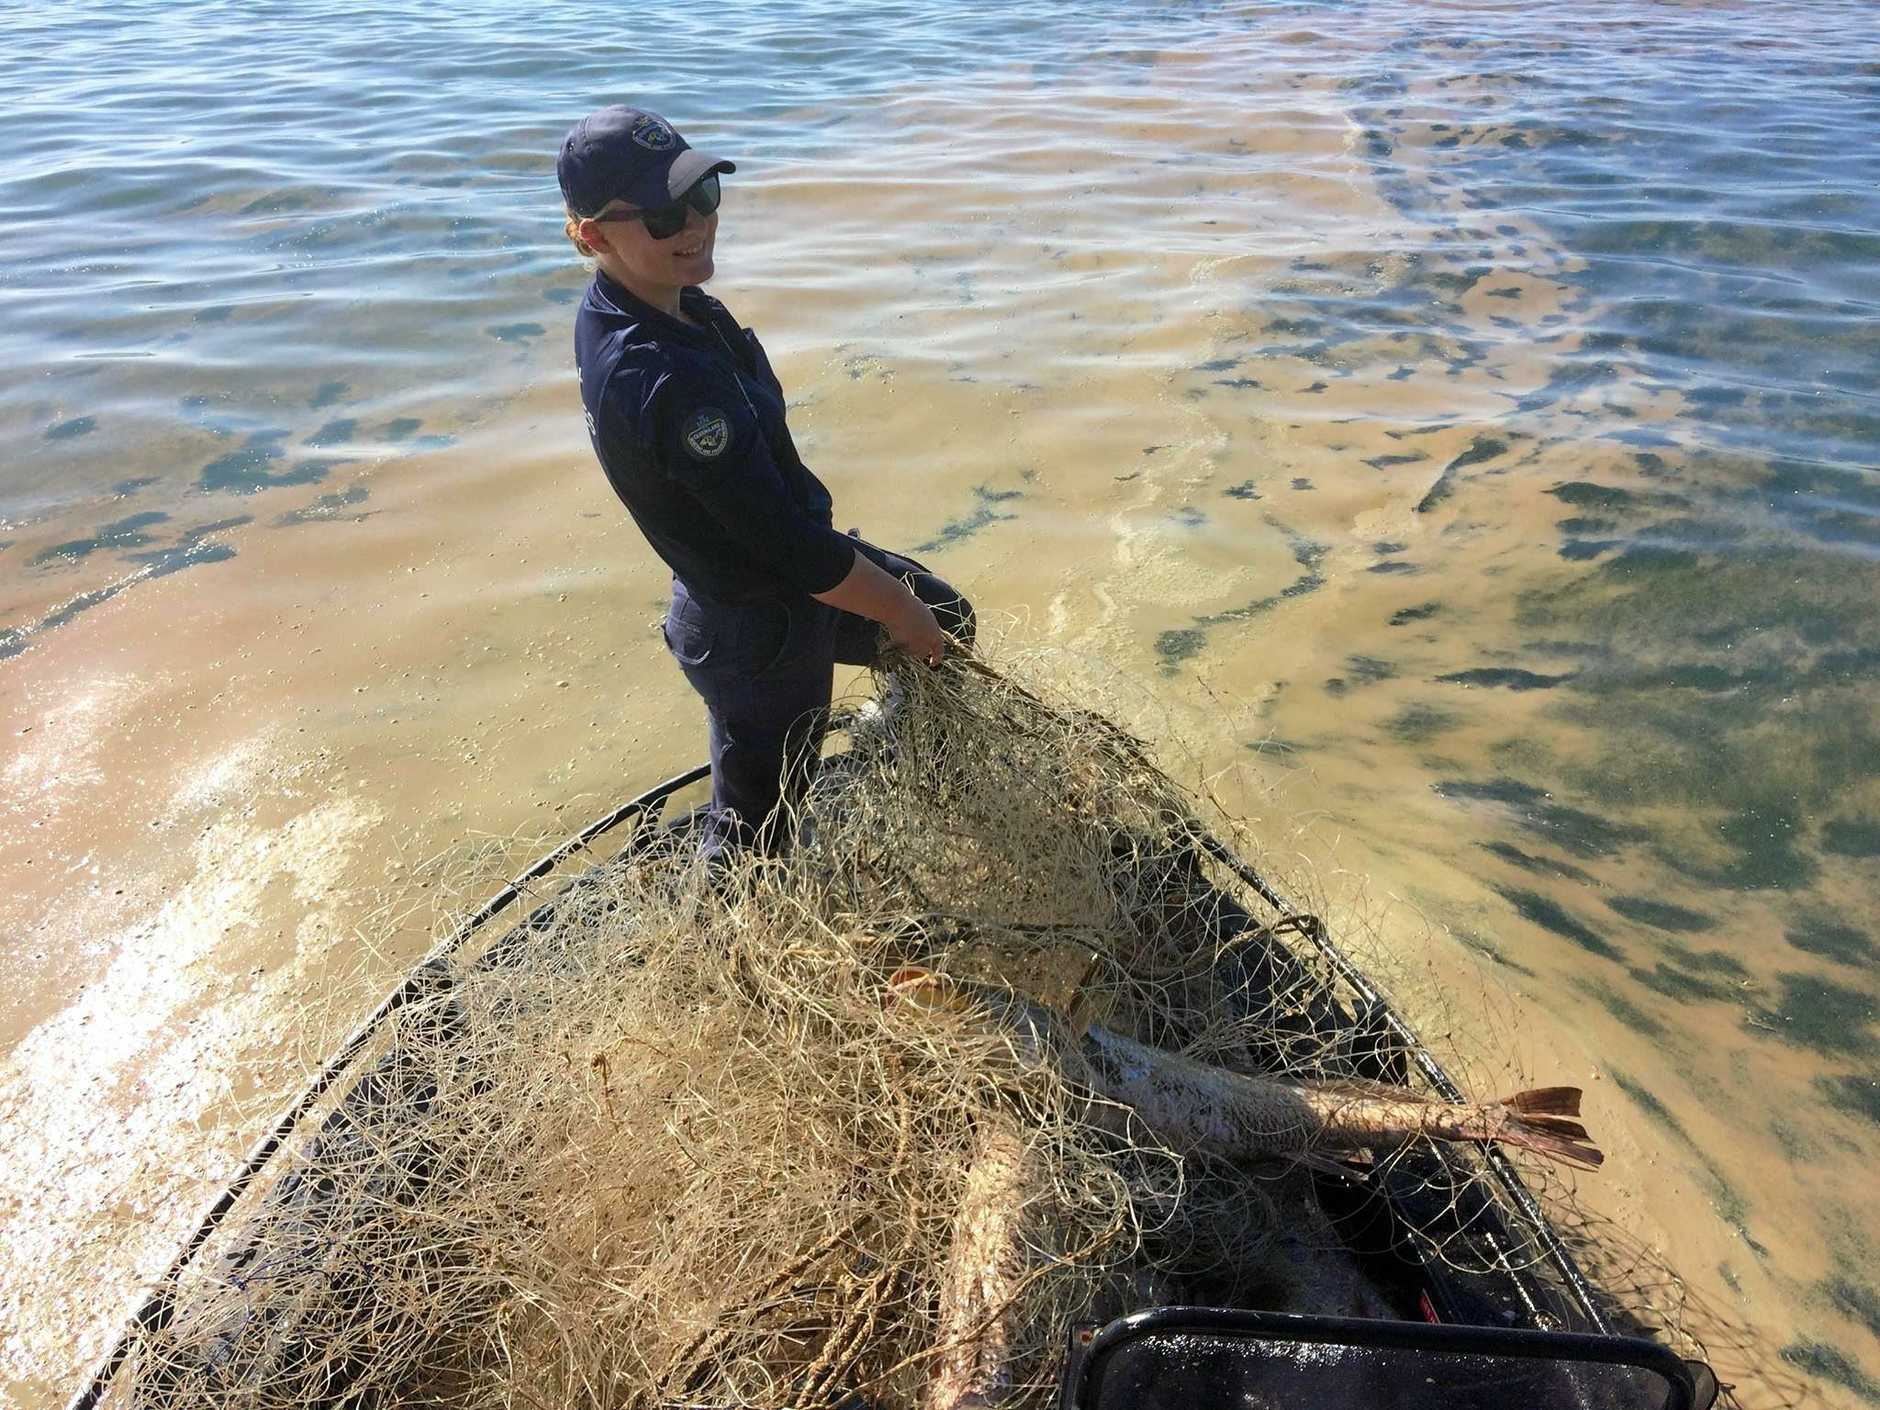 A Queensland Boating and Fishing Patrol officer reigns in an illegal fishing net found in Keppel Bay's net free zone this morning.